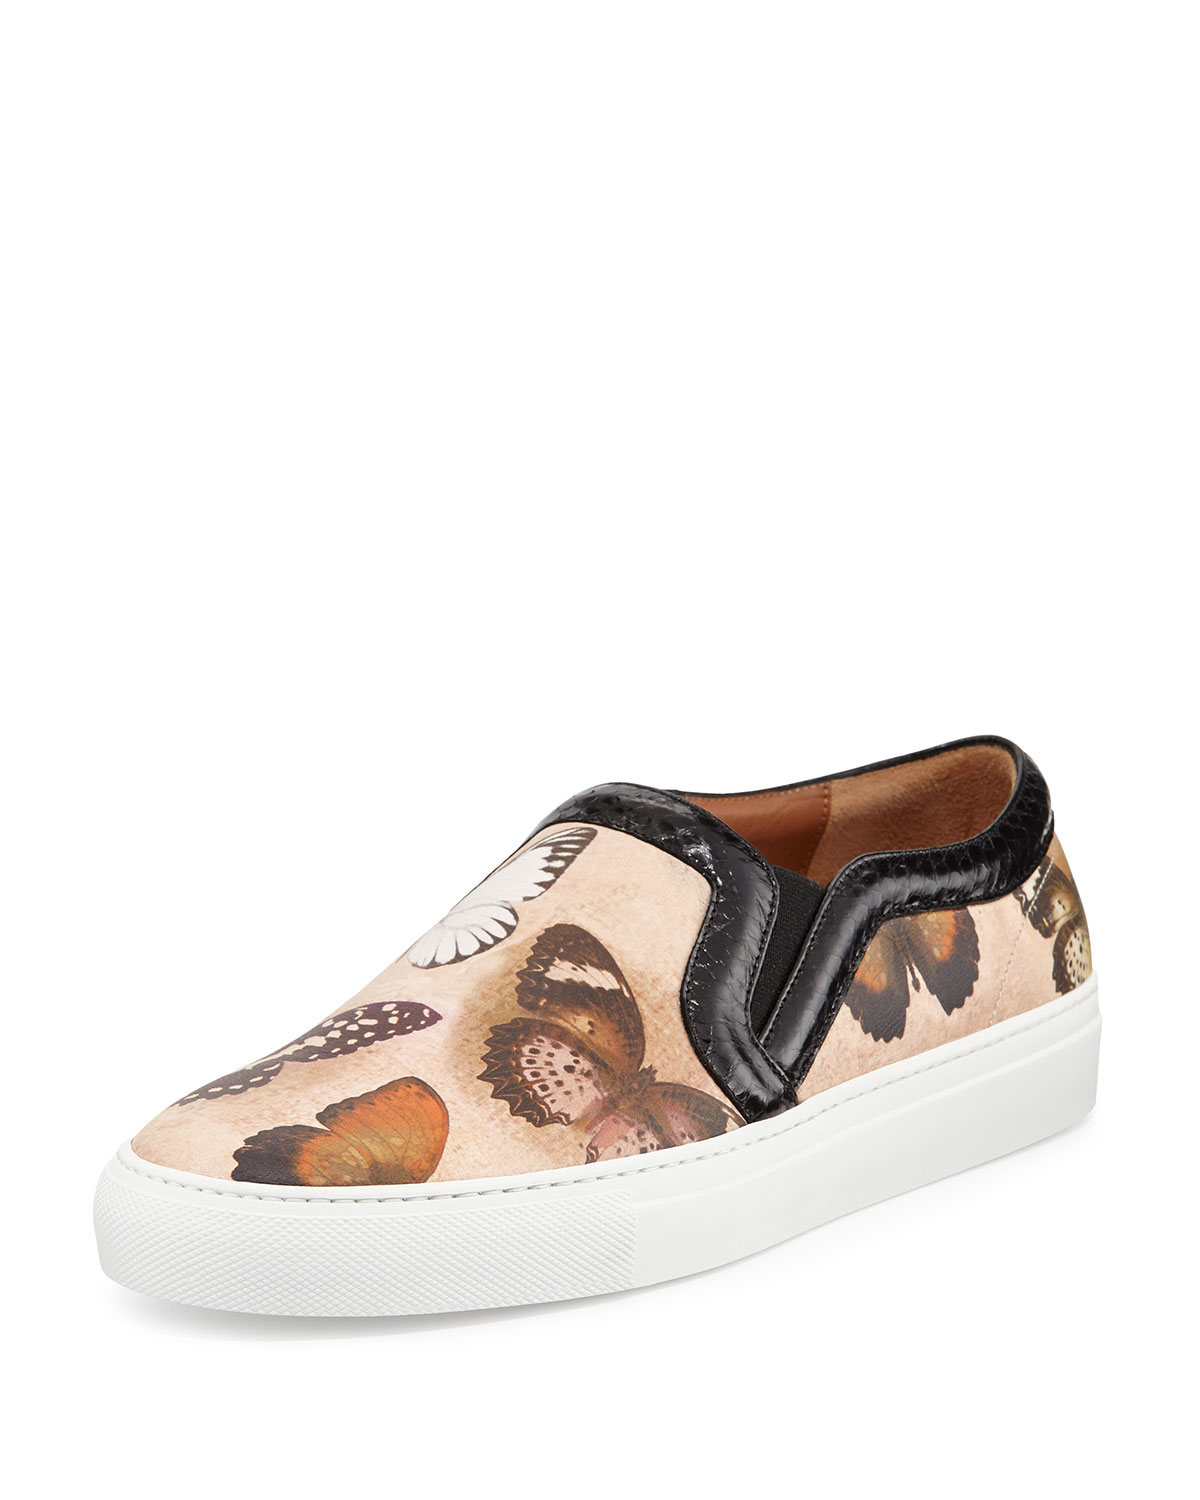 givenchy butterfly print leather skate shoe in brown lyst